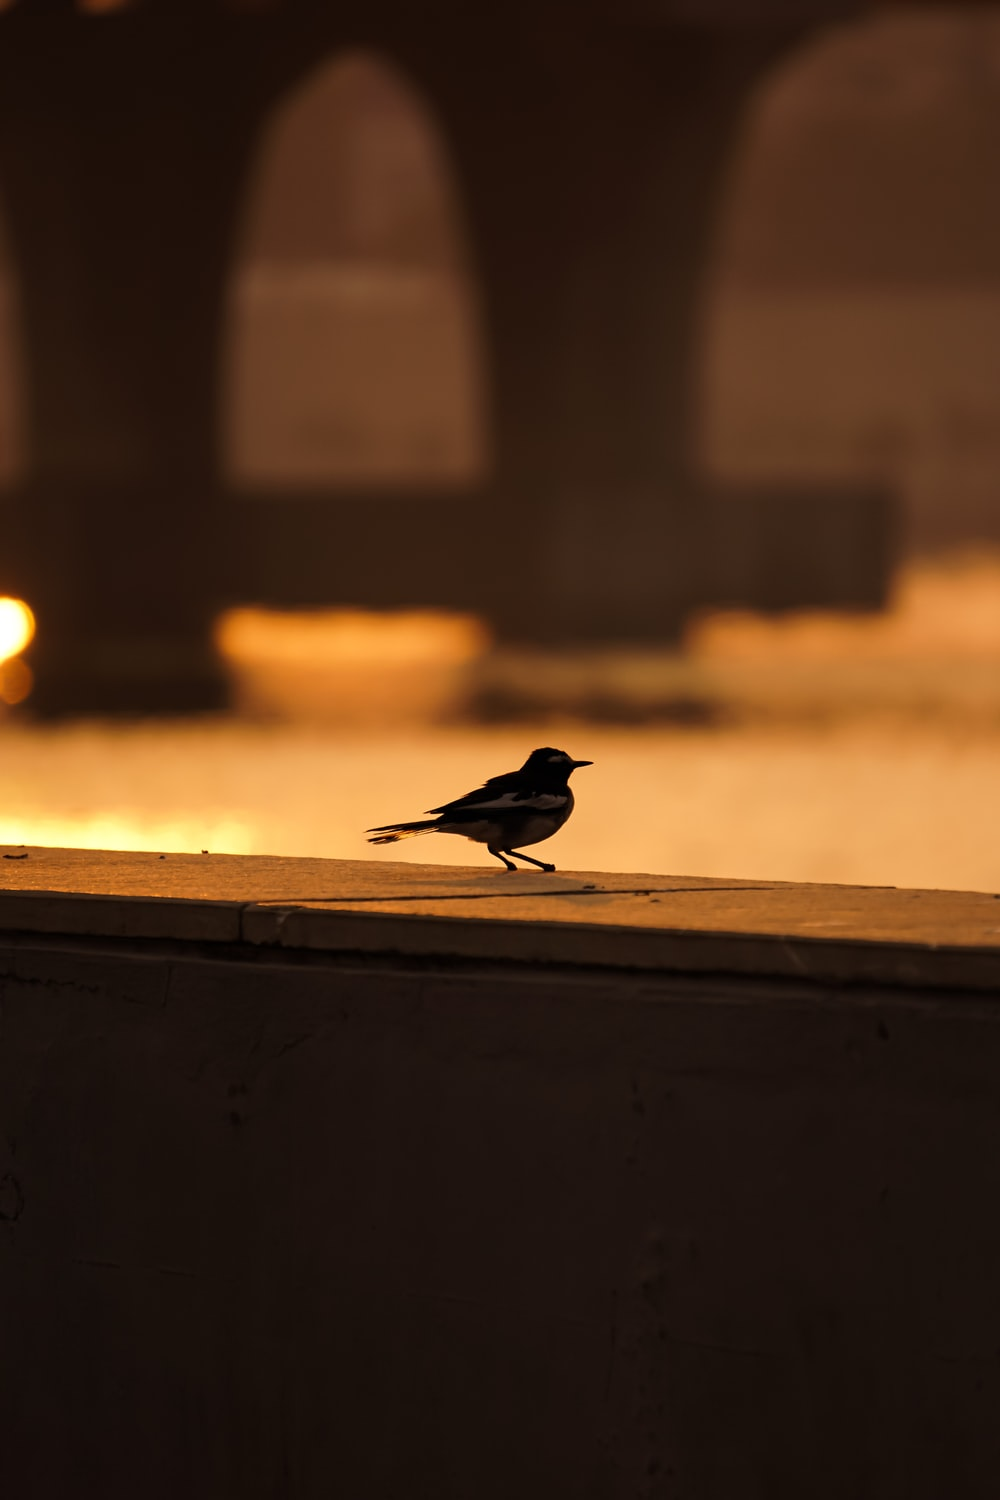 black bird on brown wooden fence during sunset